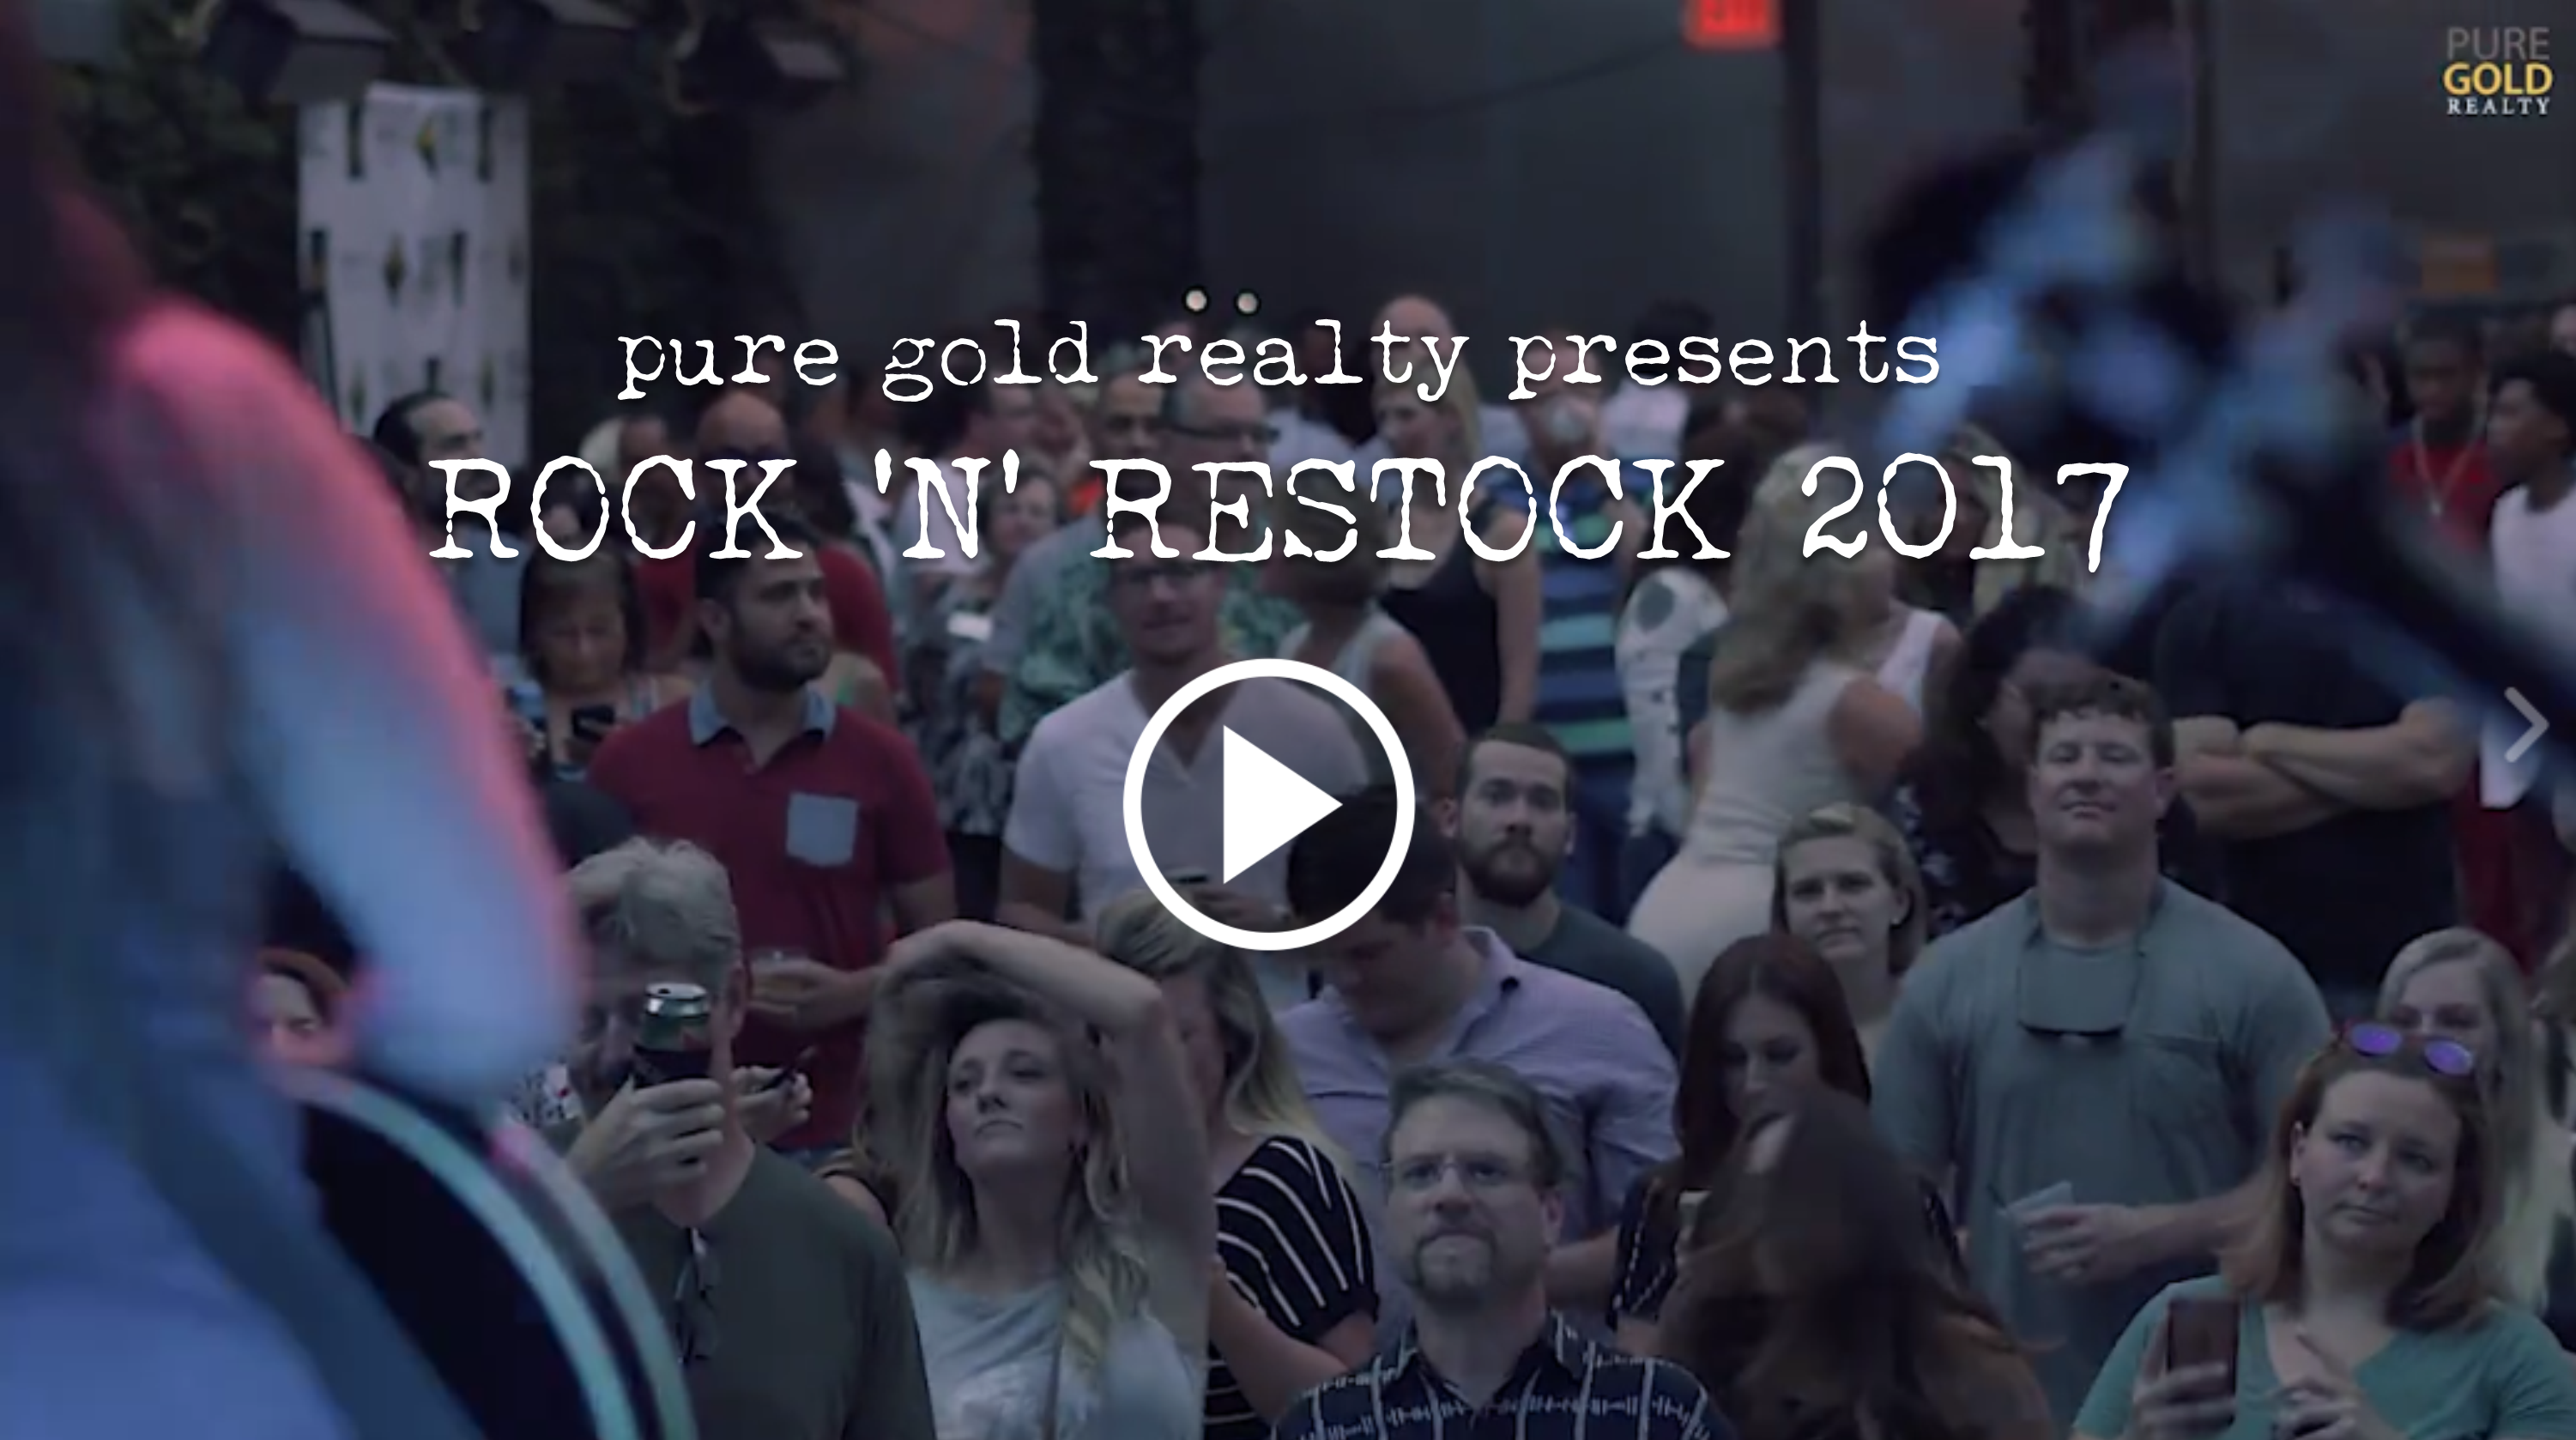 Video Recap: Rock N Restock 2017, presented by Pure Gold Realty at the Belmont, Austin, Texas